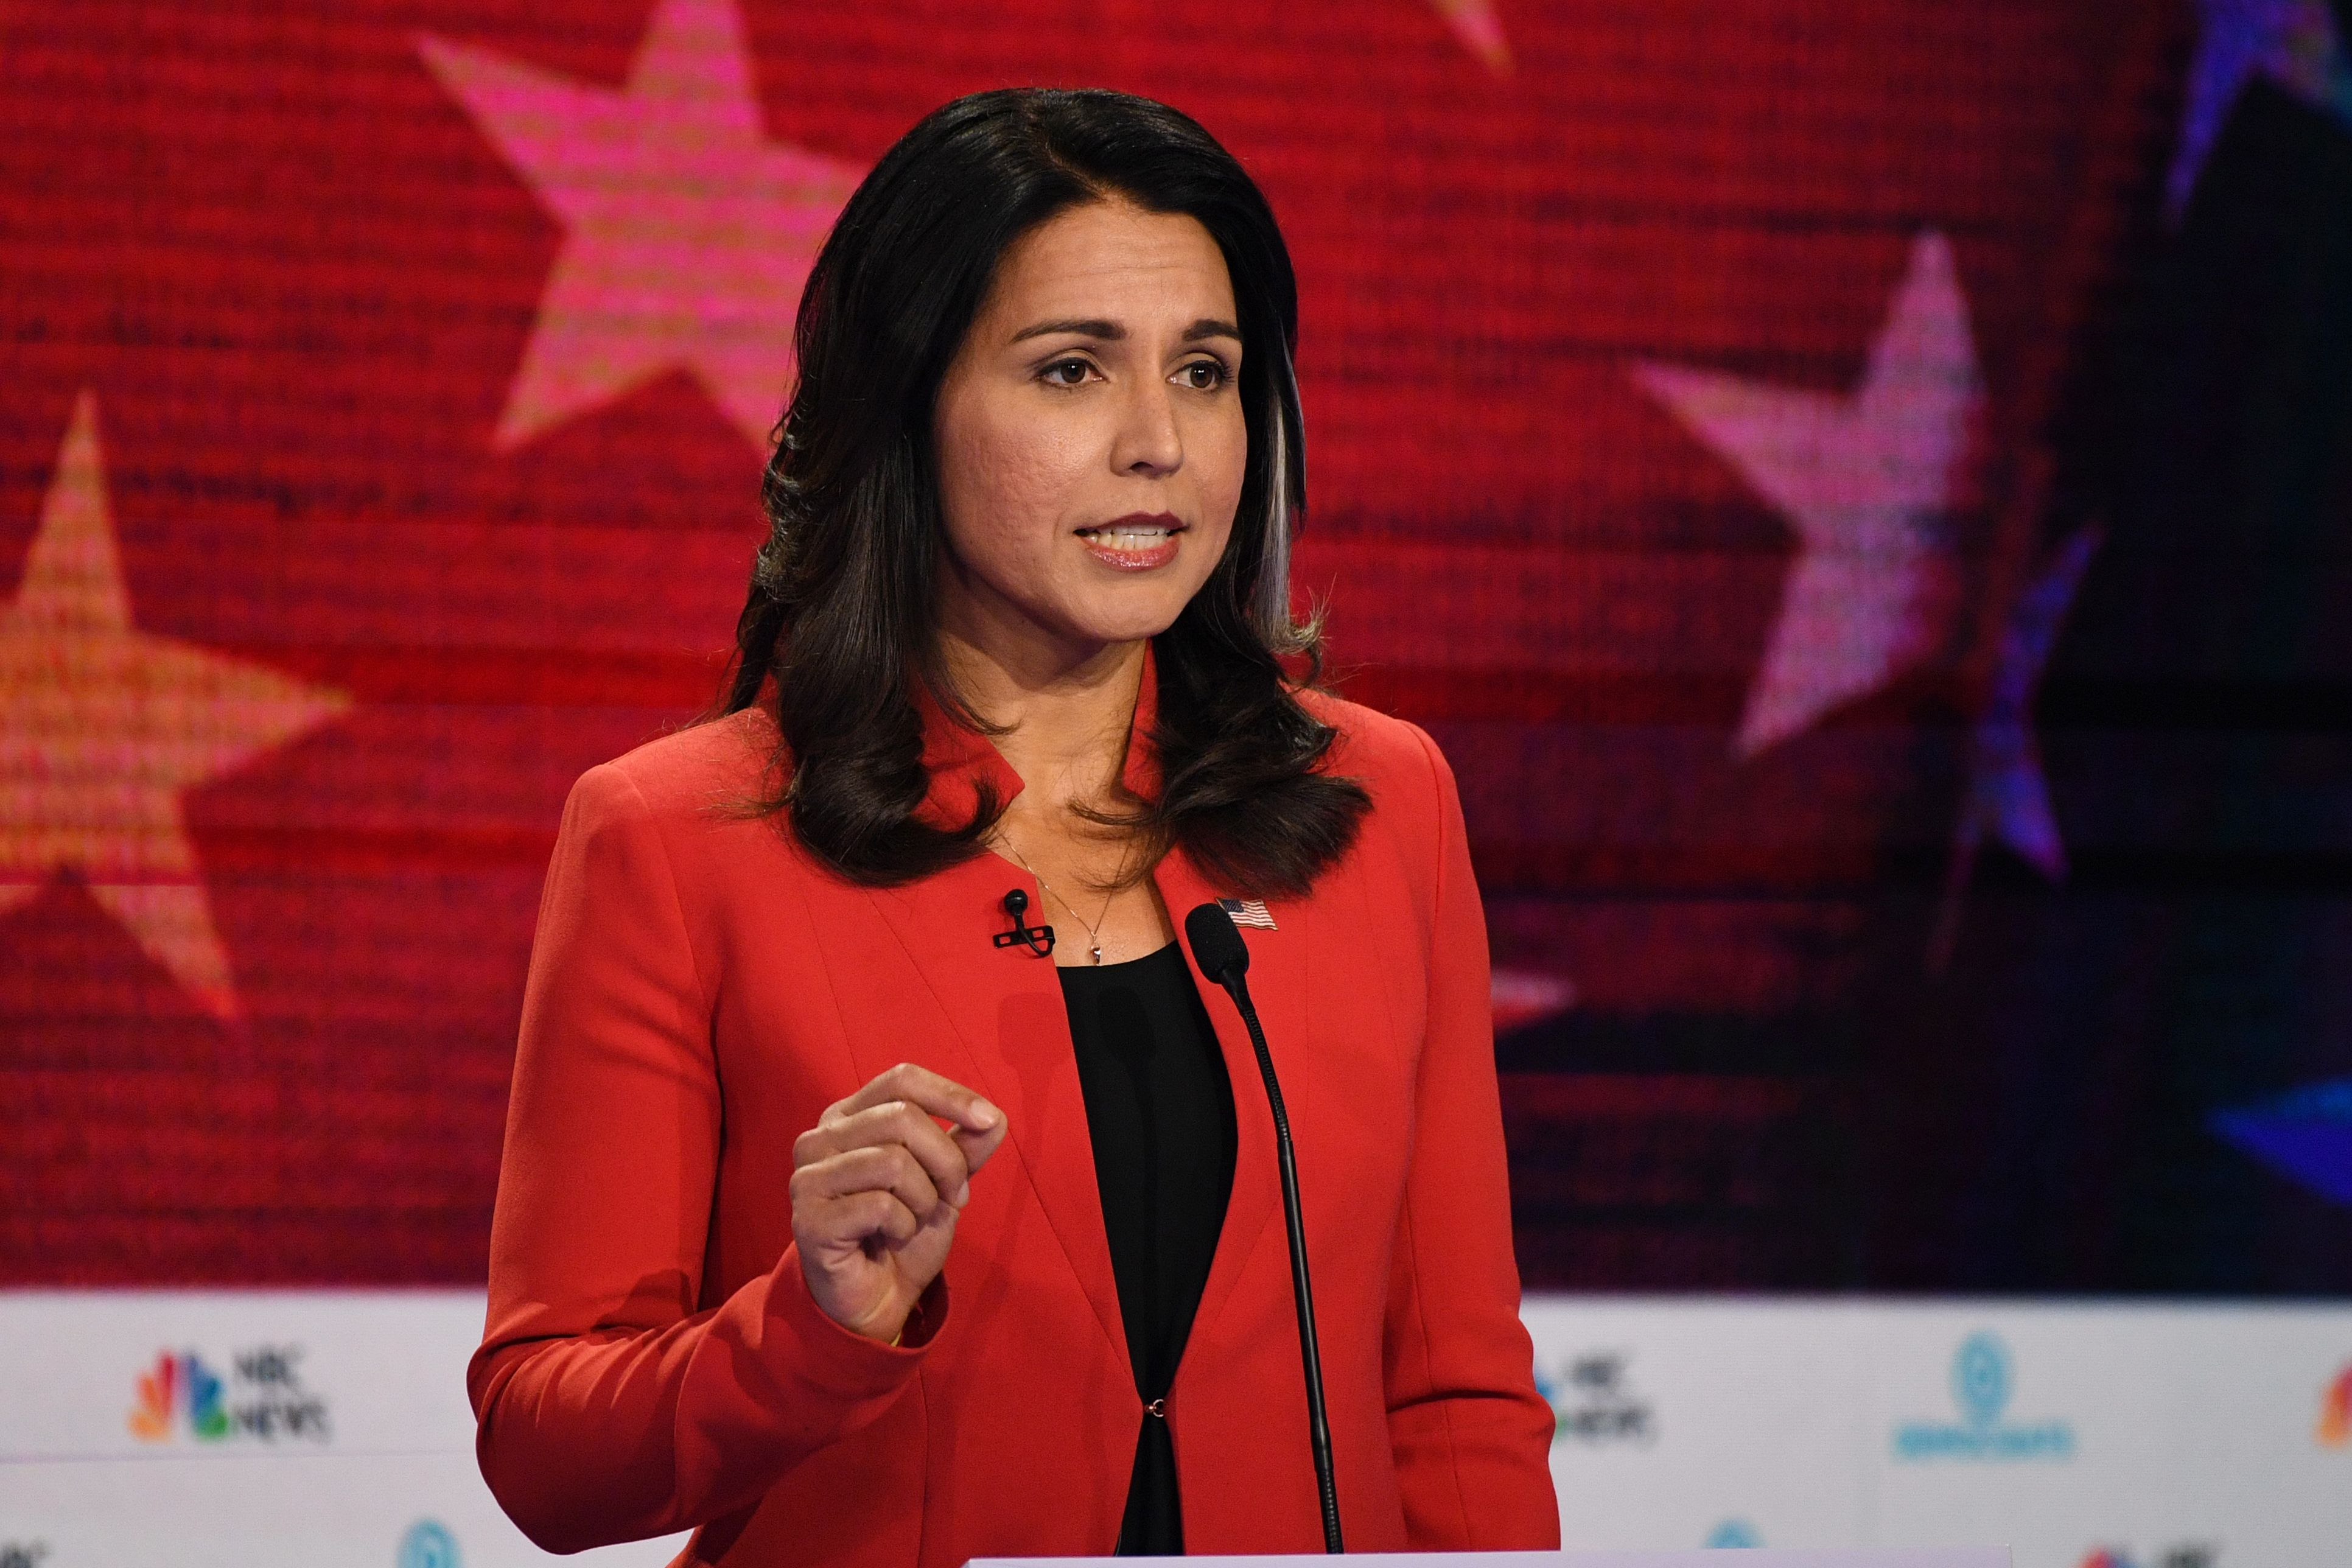 Democratic presidential hopeful US Representative for Hawaii's 2nd congressional district Tulsi Gabbard gestures as she speaks during the first Democratic primary debate of the 2020 presidential campaign season (JIM WATSON/AFP/Getty Images)